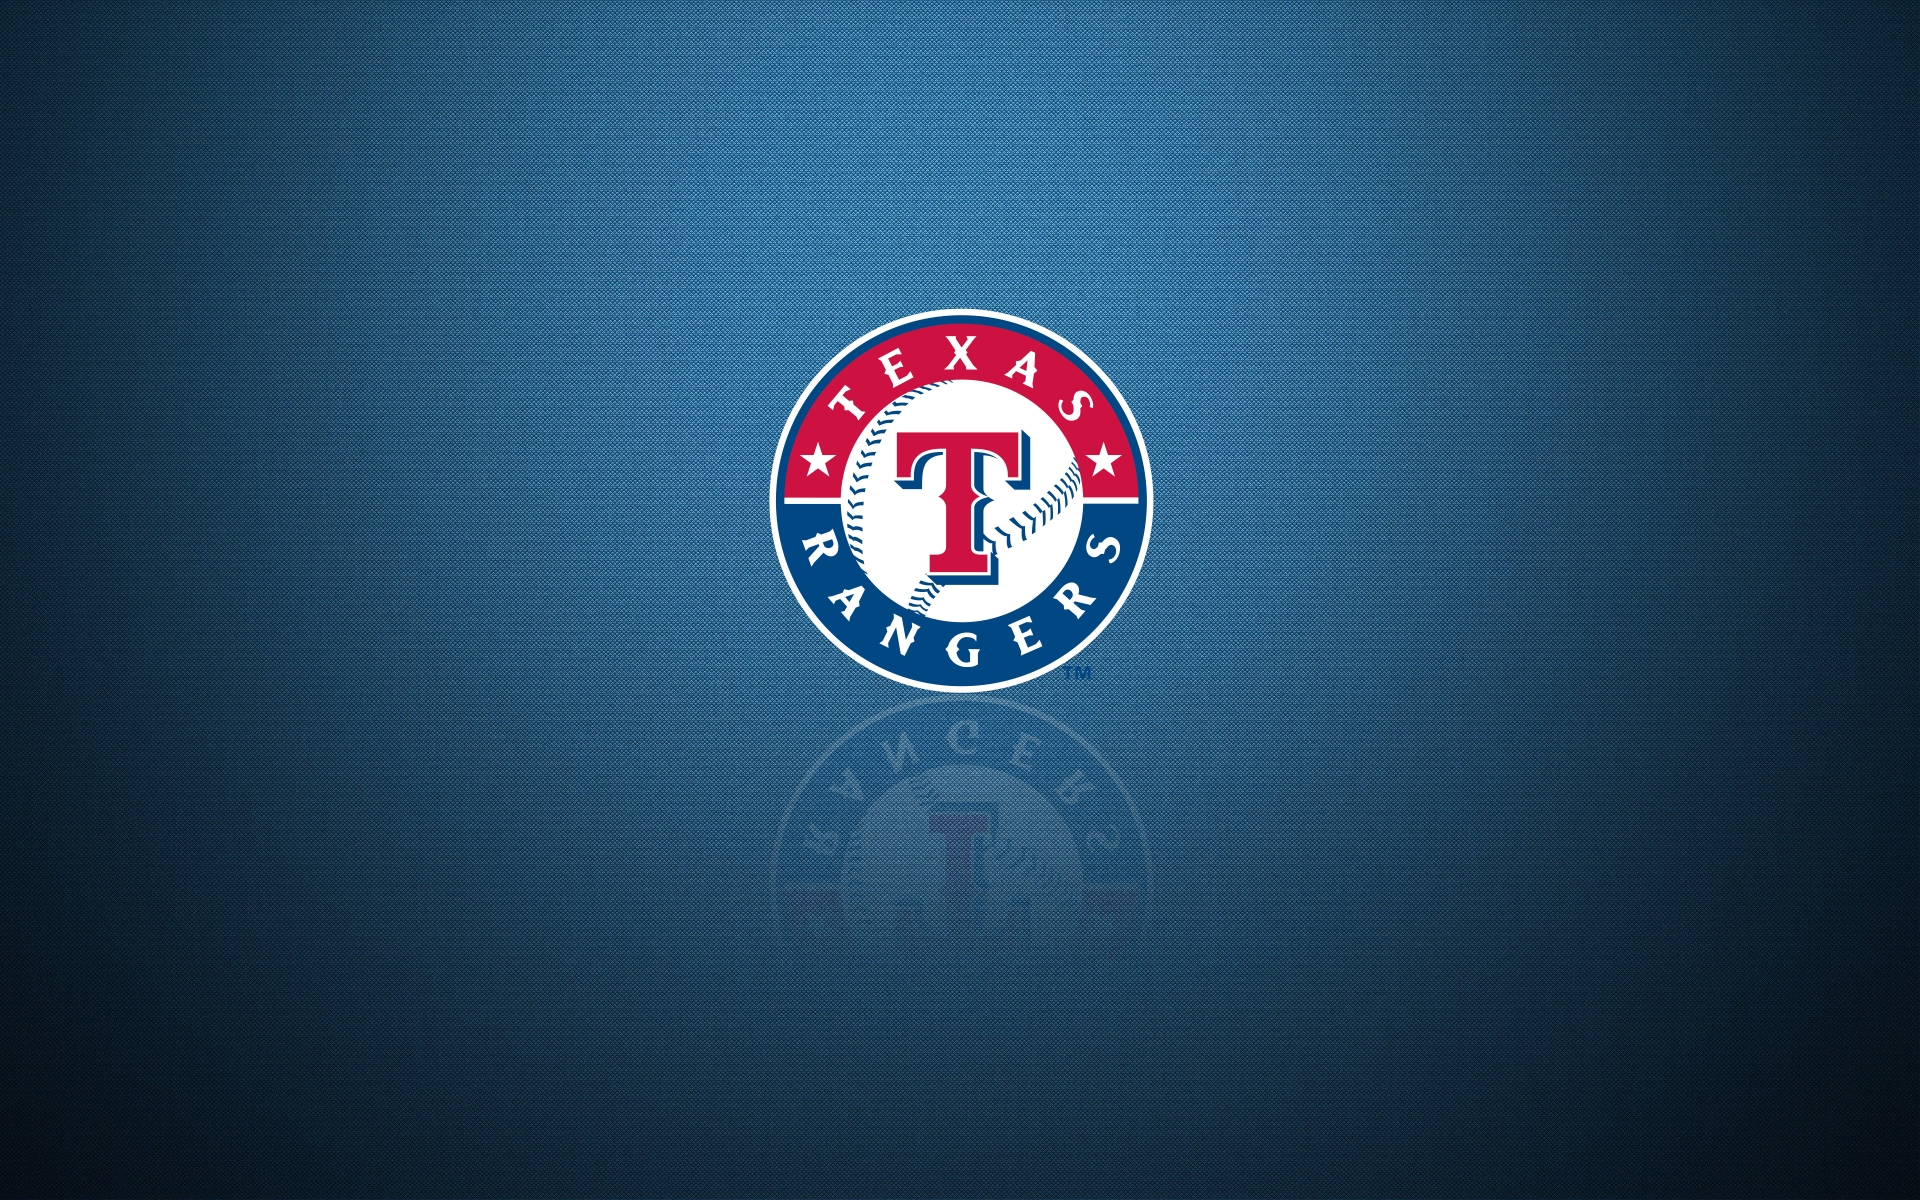 Texas Rangers Logos Download